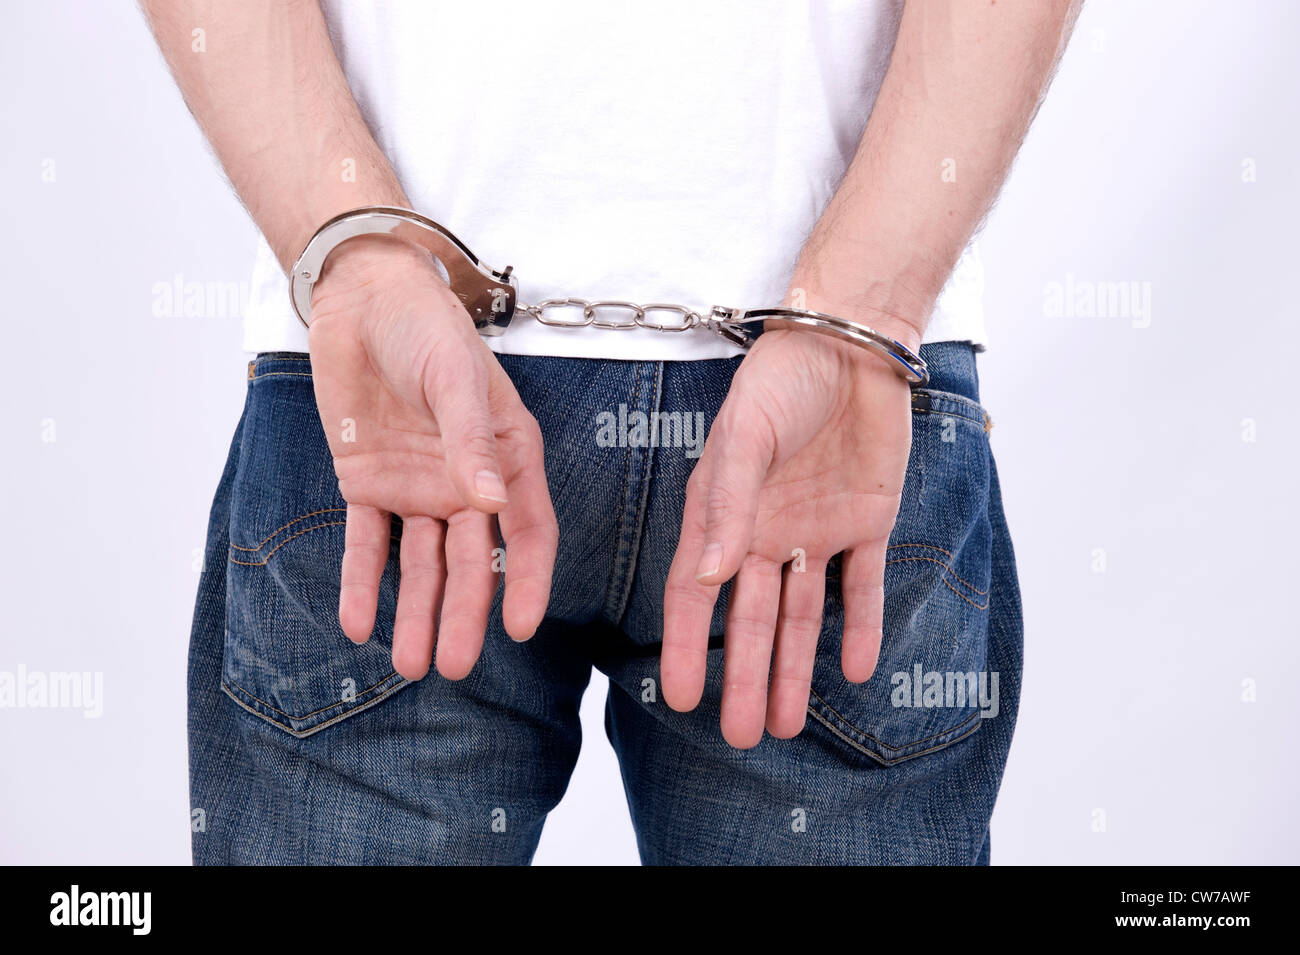 man with handcuffs - Stock Image